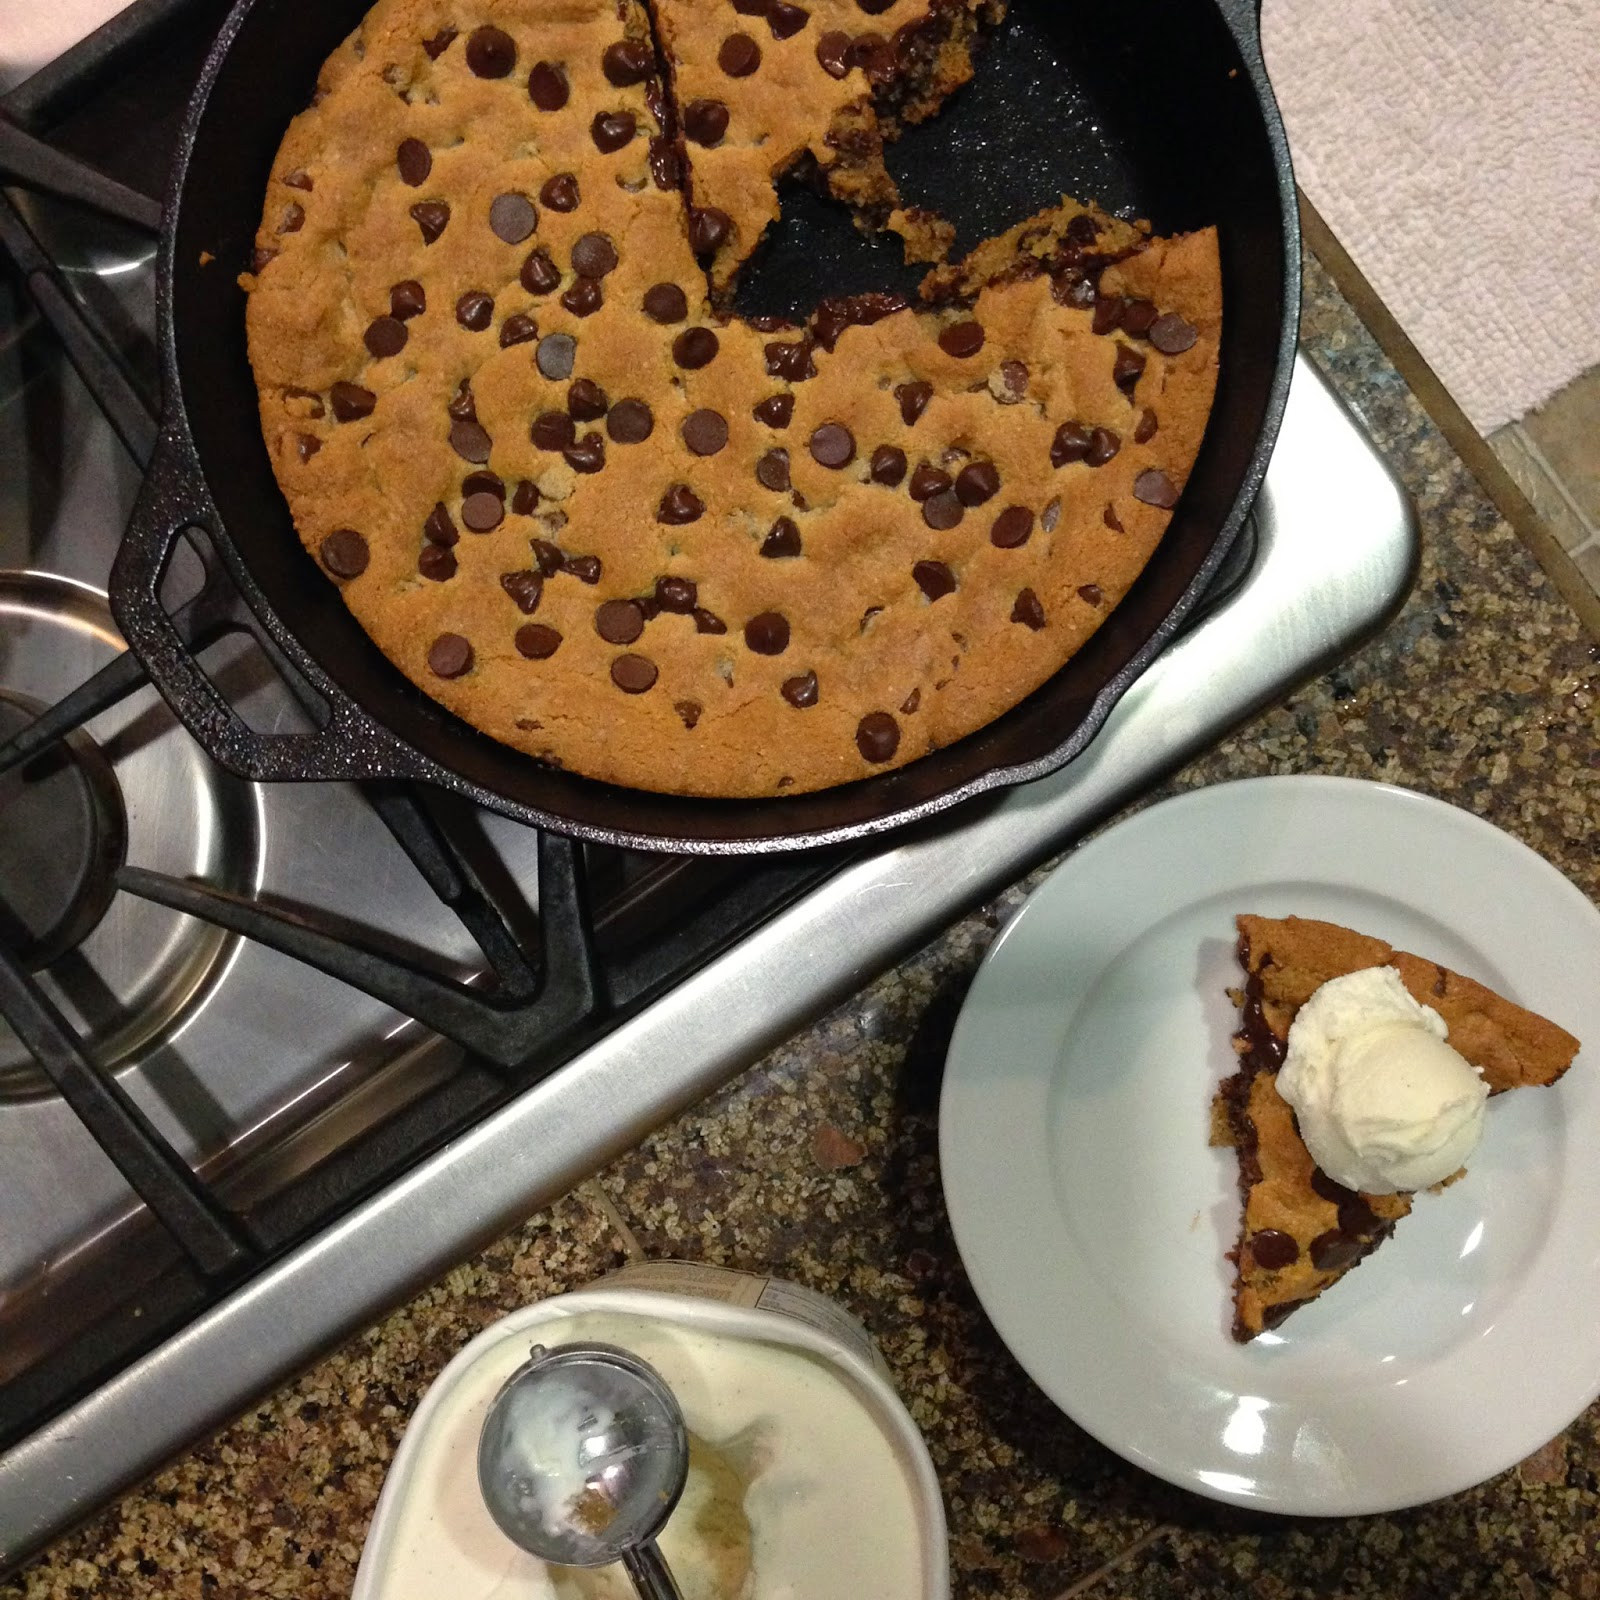 Grain-free egg-free Chocolate Chip Pizookie!